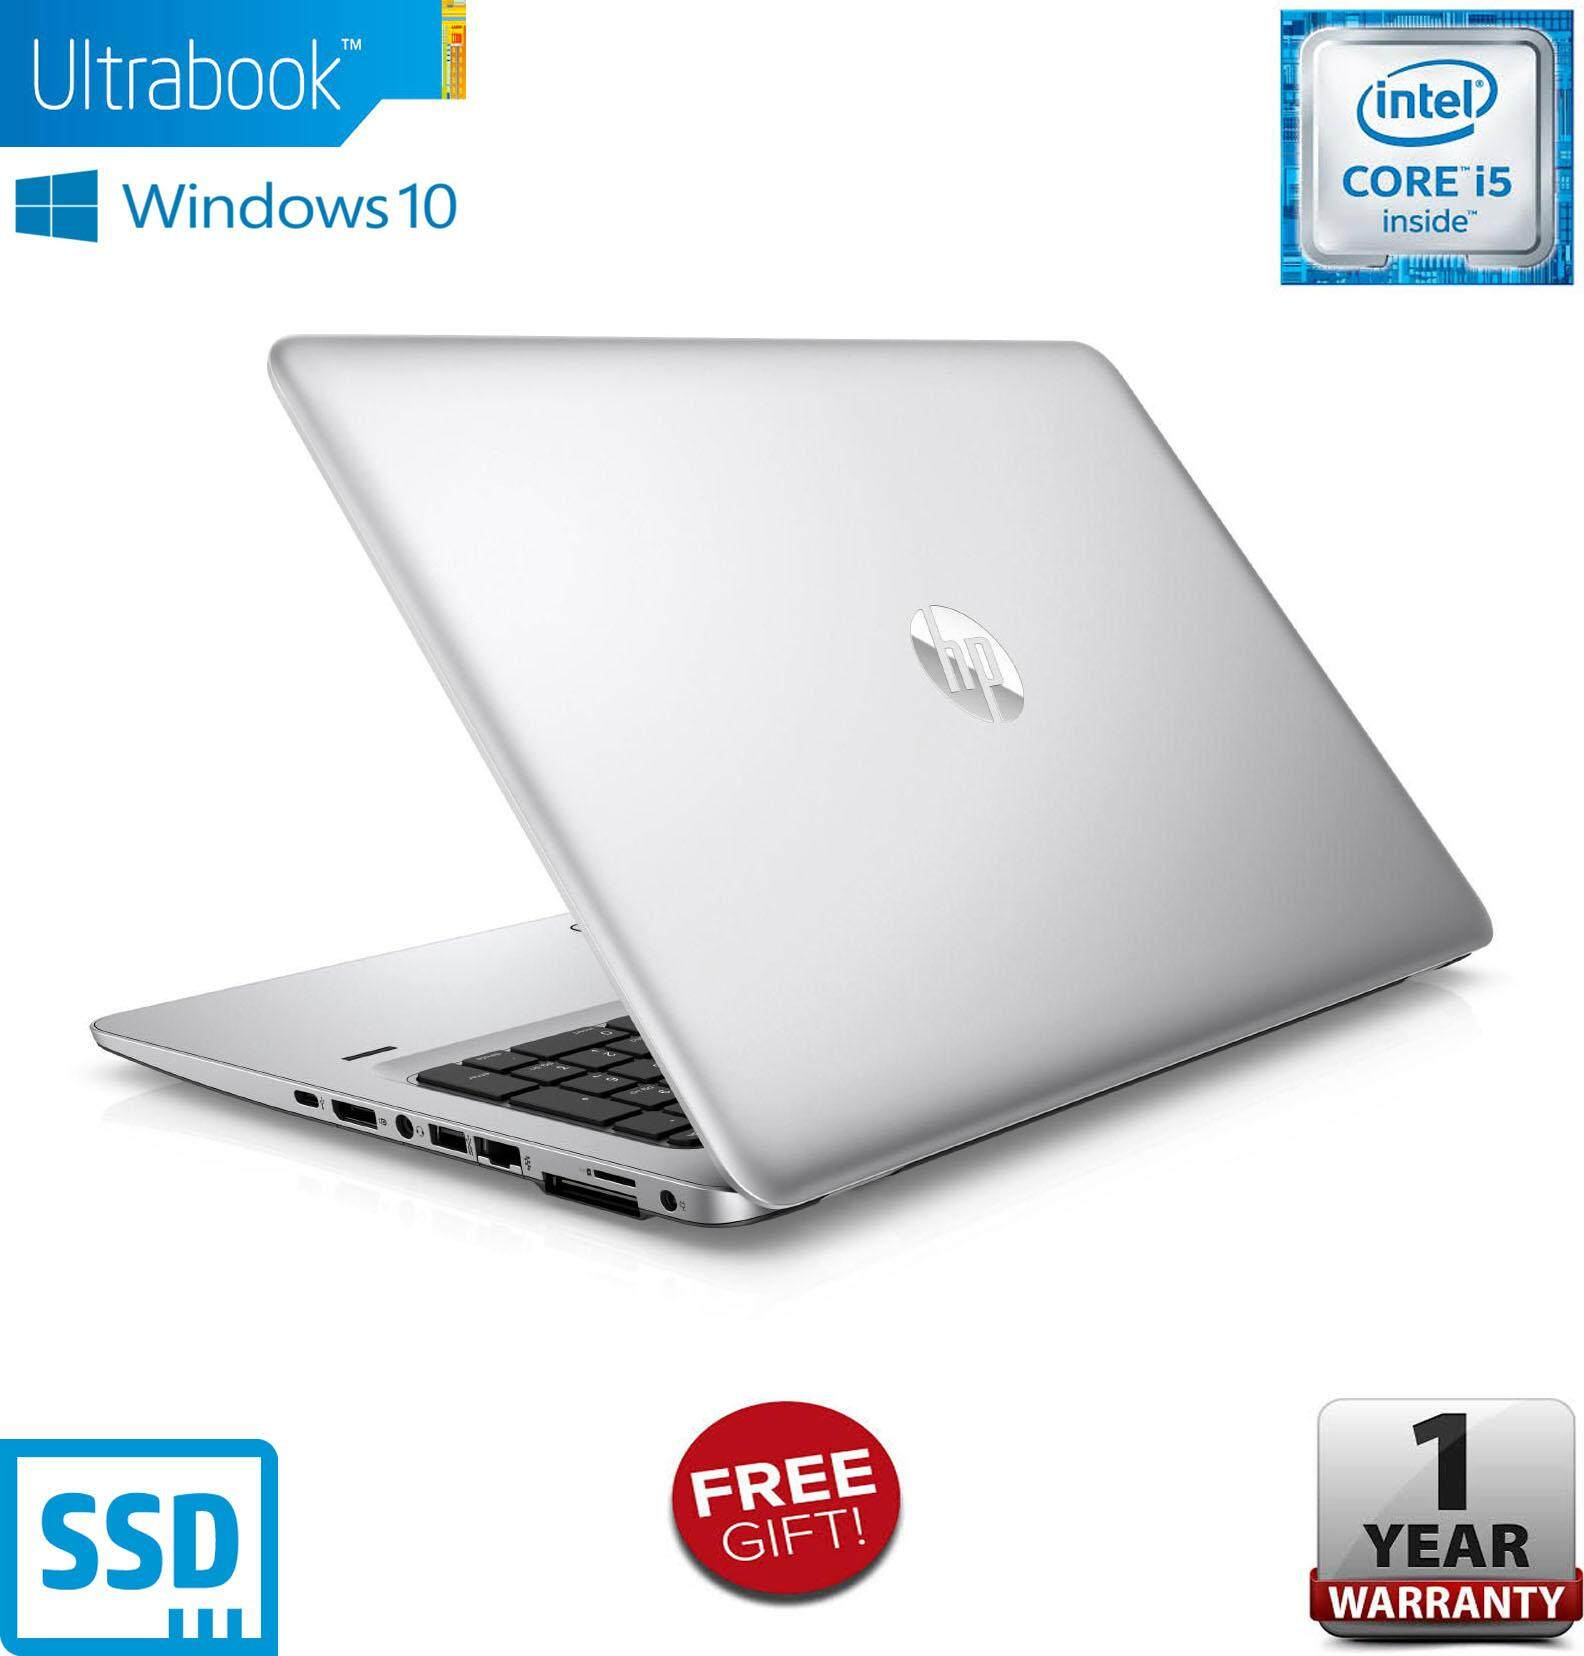 HP ELITEBOOK 840 G3 / CORE I5 6TH GEN / 8GB RAM / 256GB SSD / 1 YEAR WARRANTY / FREE BAG Malaysia